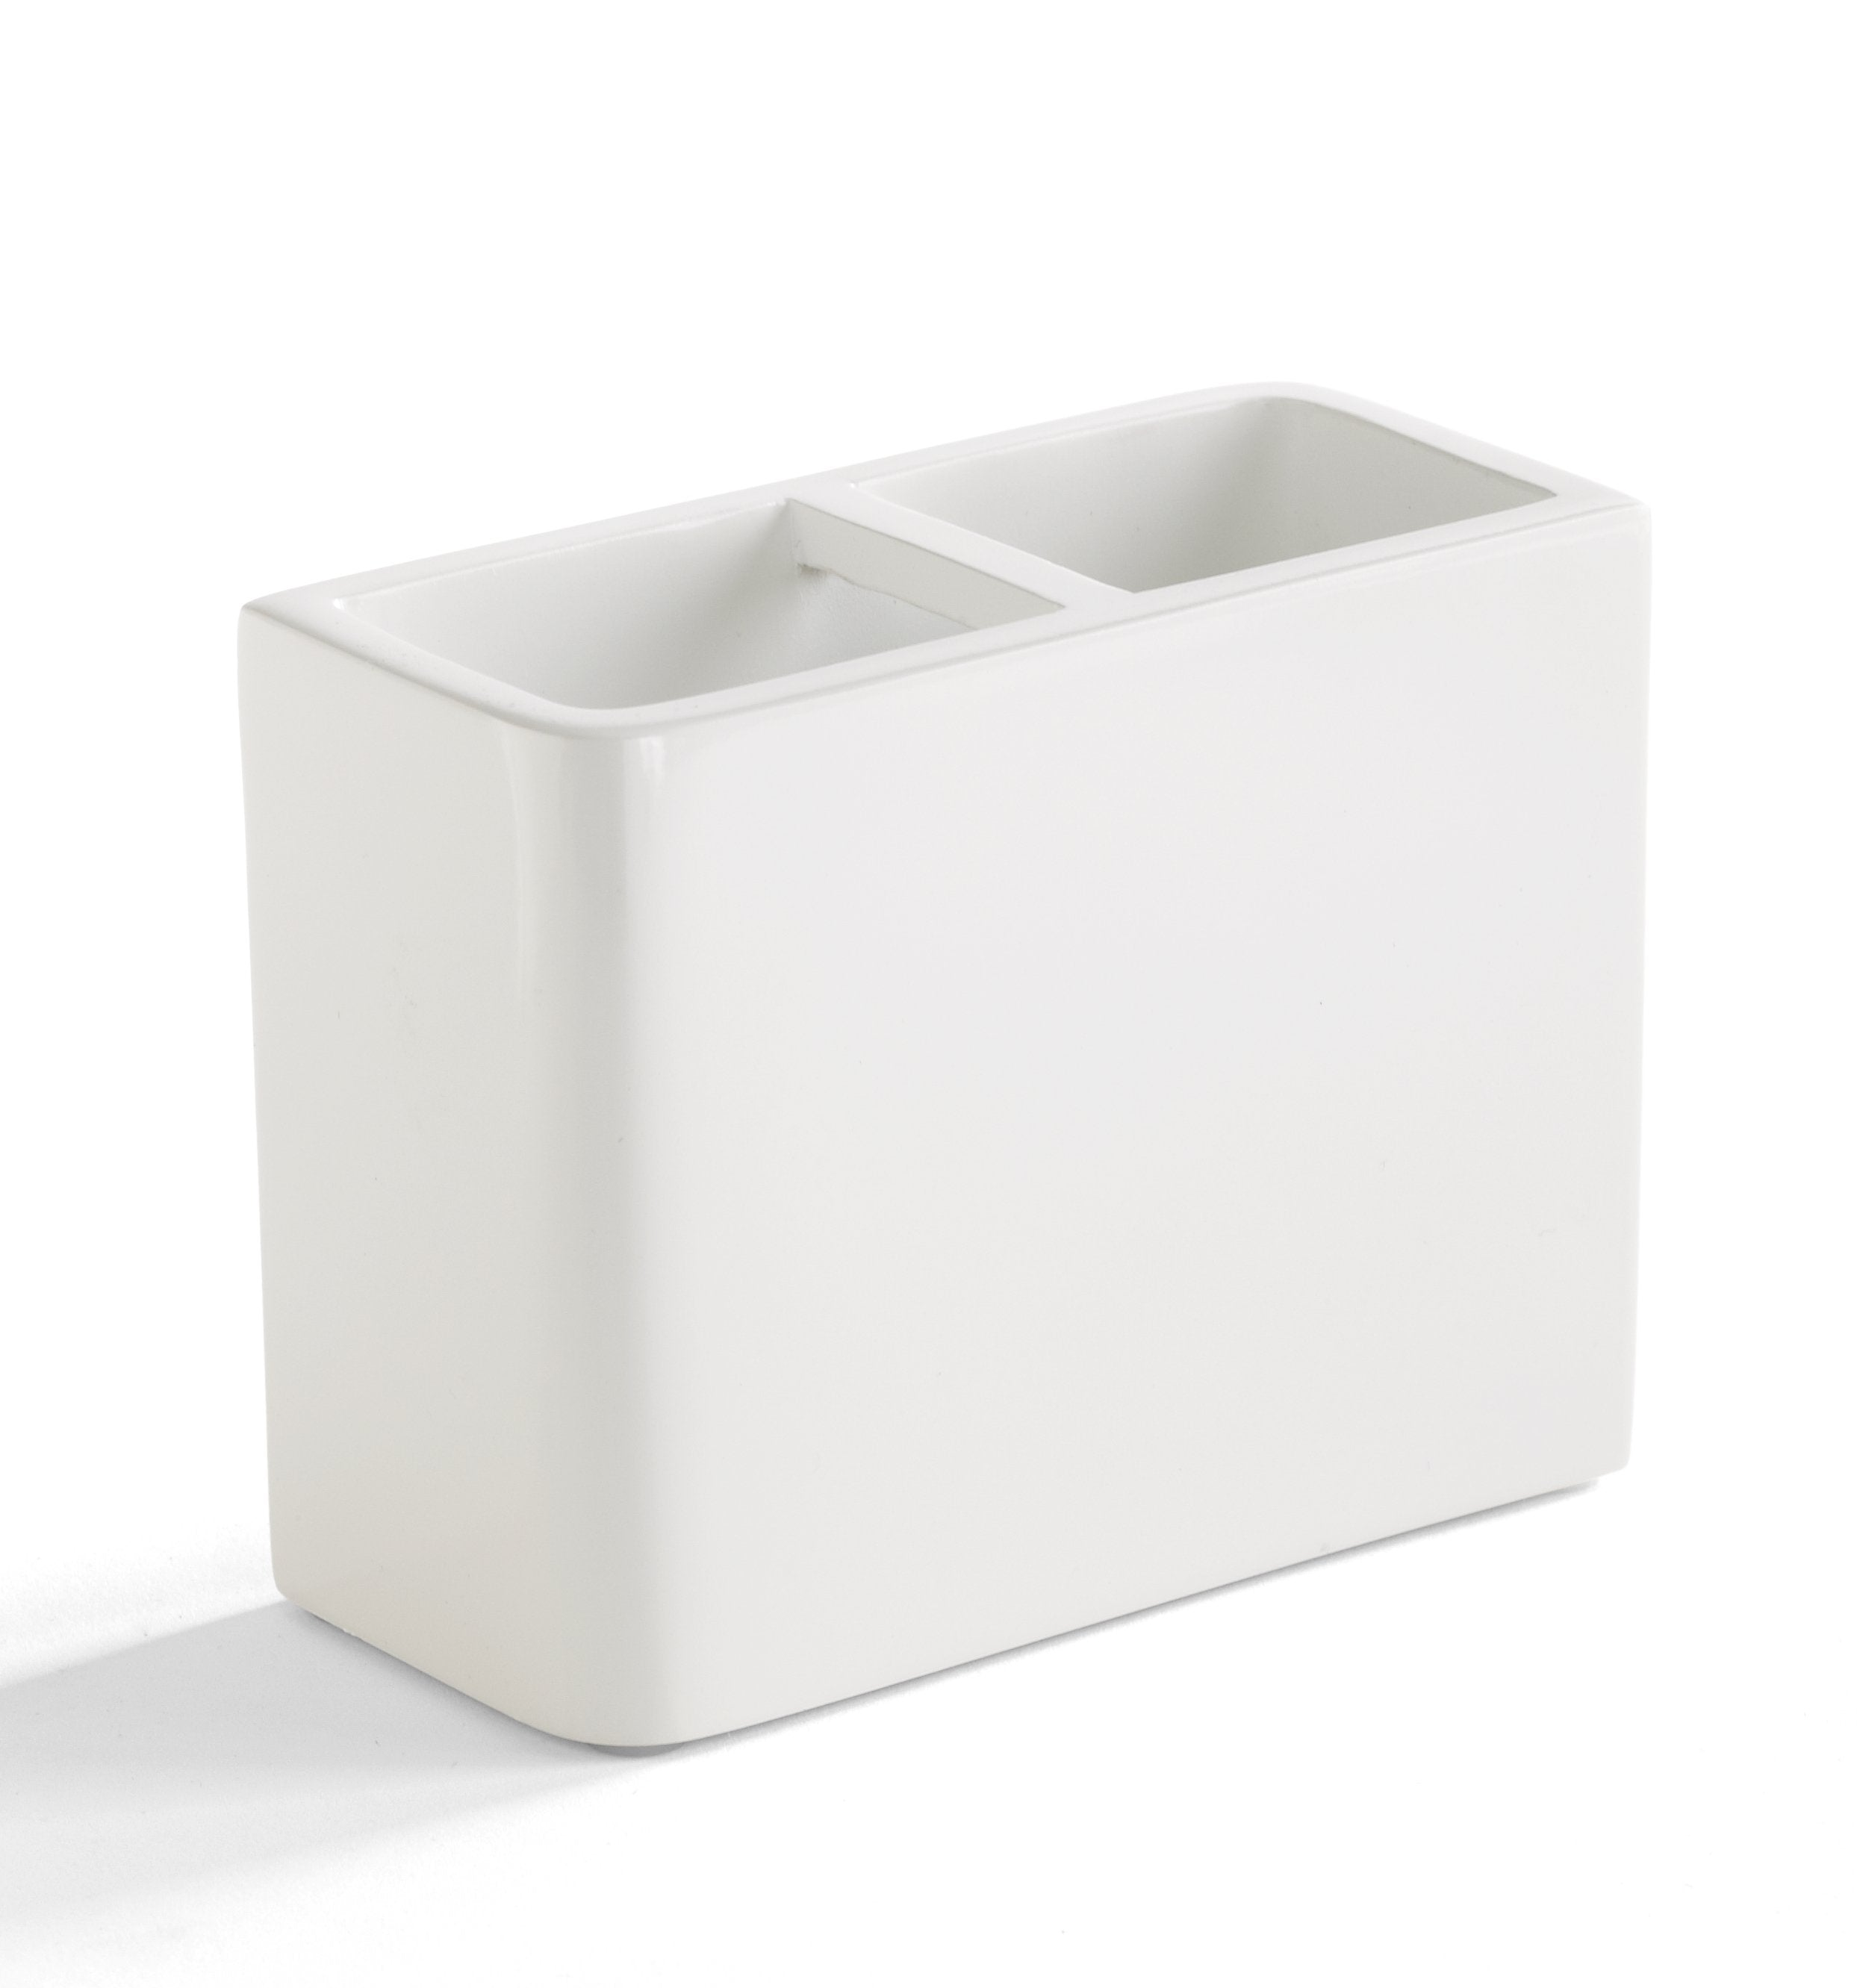 Kassatex Lacca White Toothbrush Holder